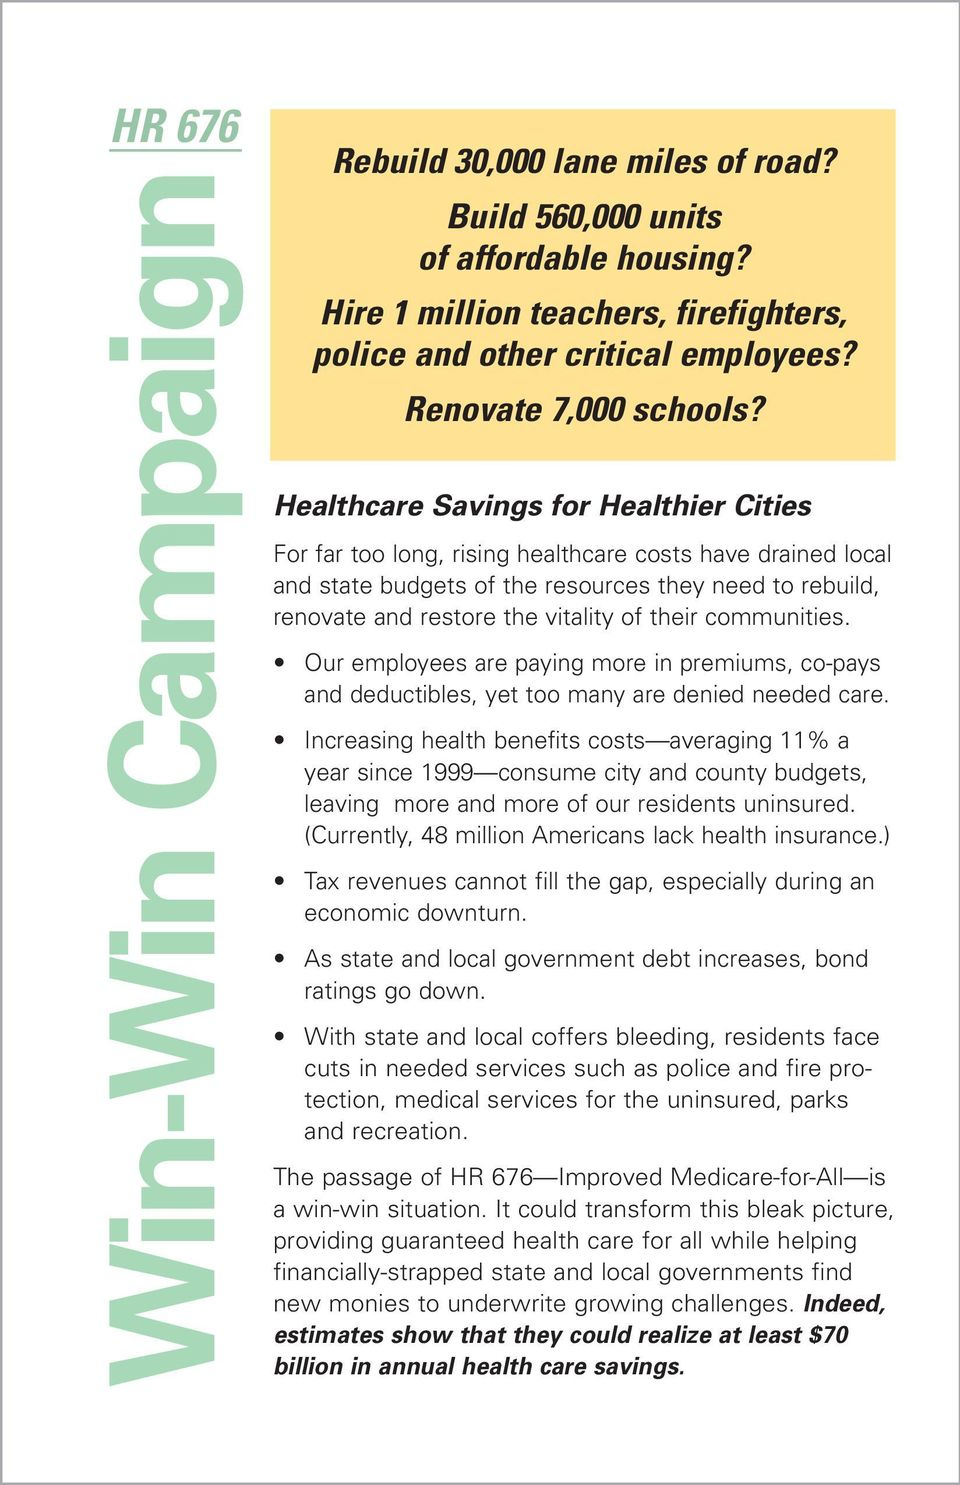 Healthcare Savings for Healthier Cities For far too long, rising healthcare costs have drained local and state budgets of the resources they need to rebuild, renovate and restore the vitality of